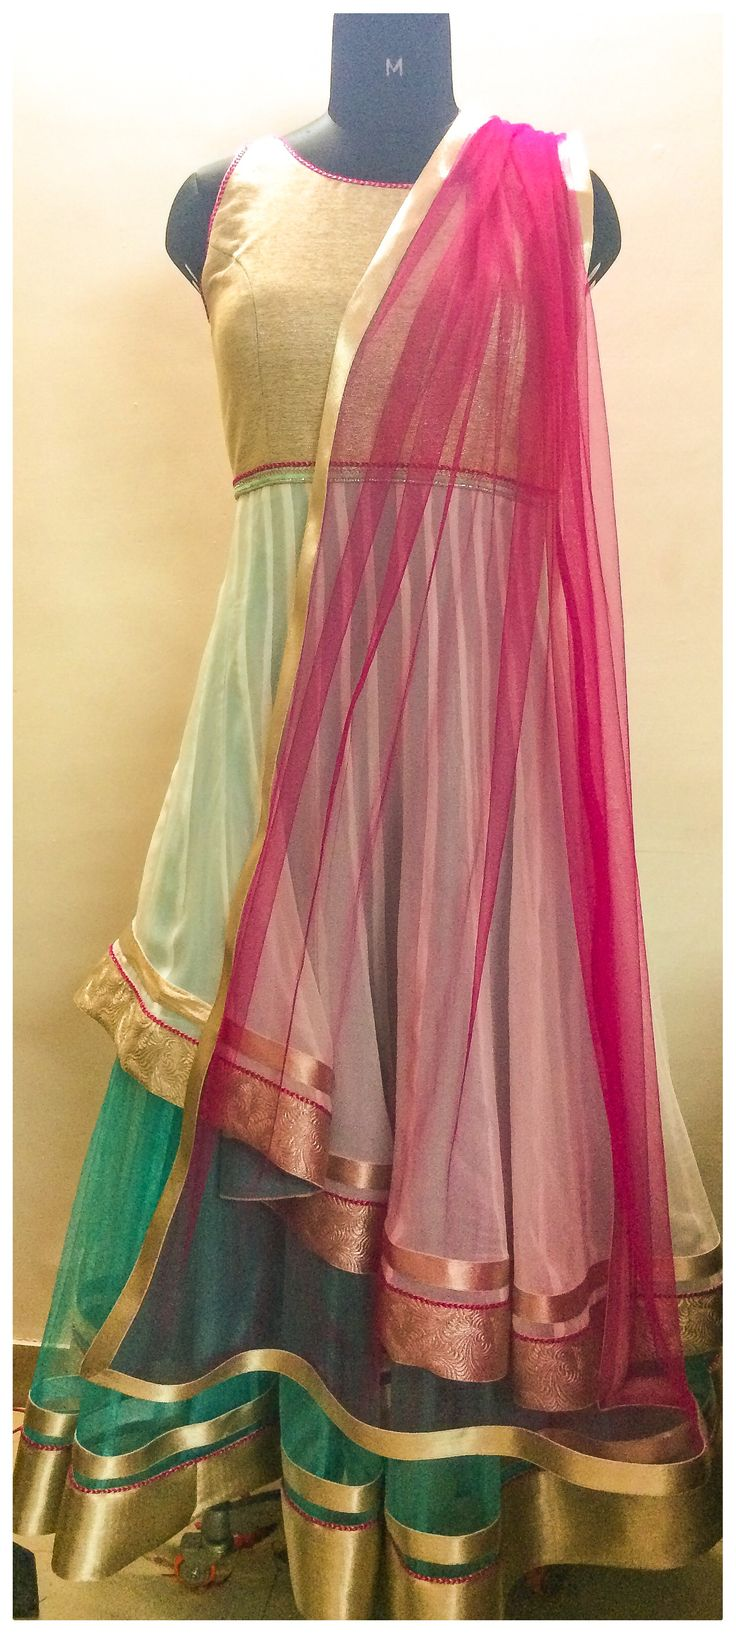 double layered tulle net dress..love it..